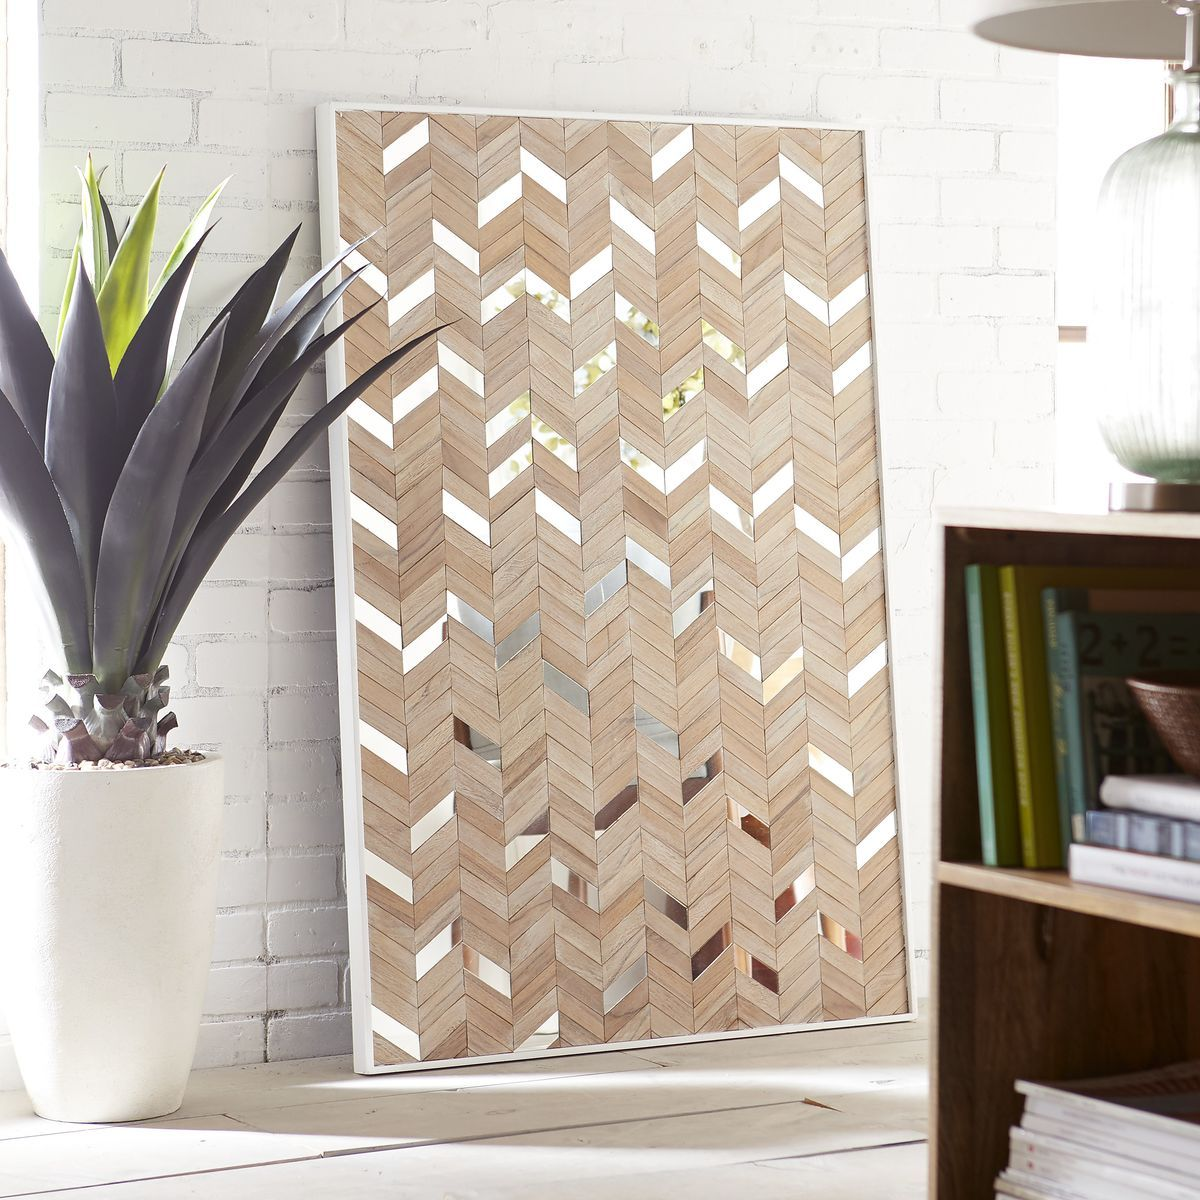 Metro Mirrored Wall Panel Mirror Panel Wall Wall Paneling Chevron Wall